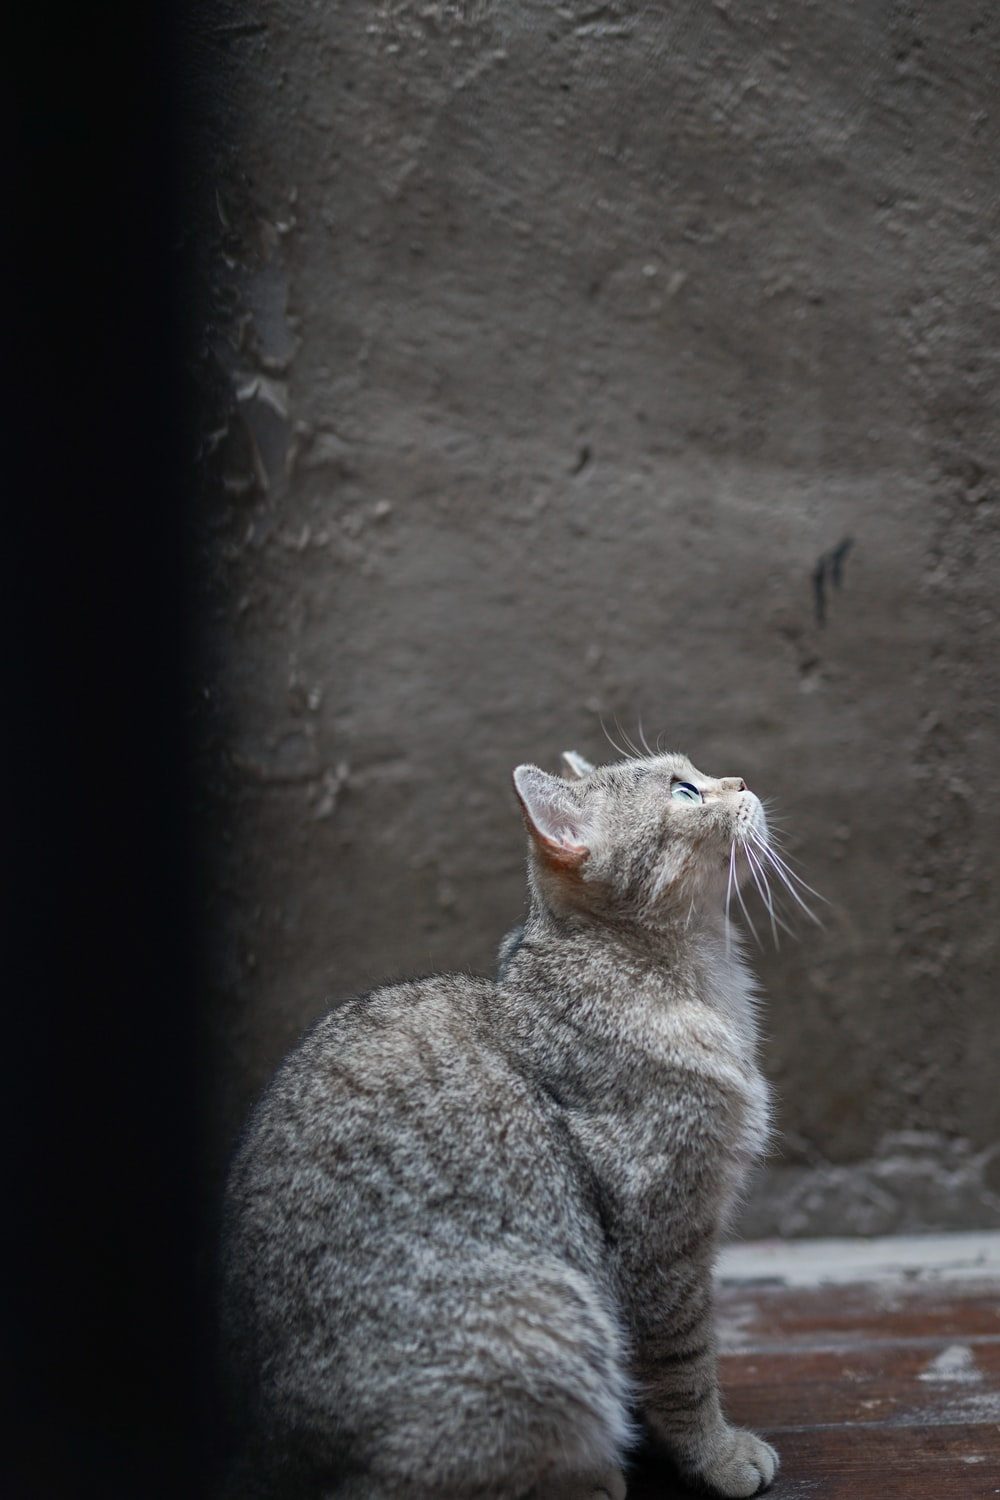 gray and white tabby cat sitting while looking up